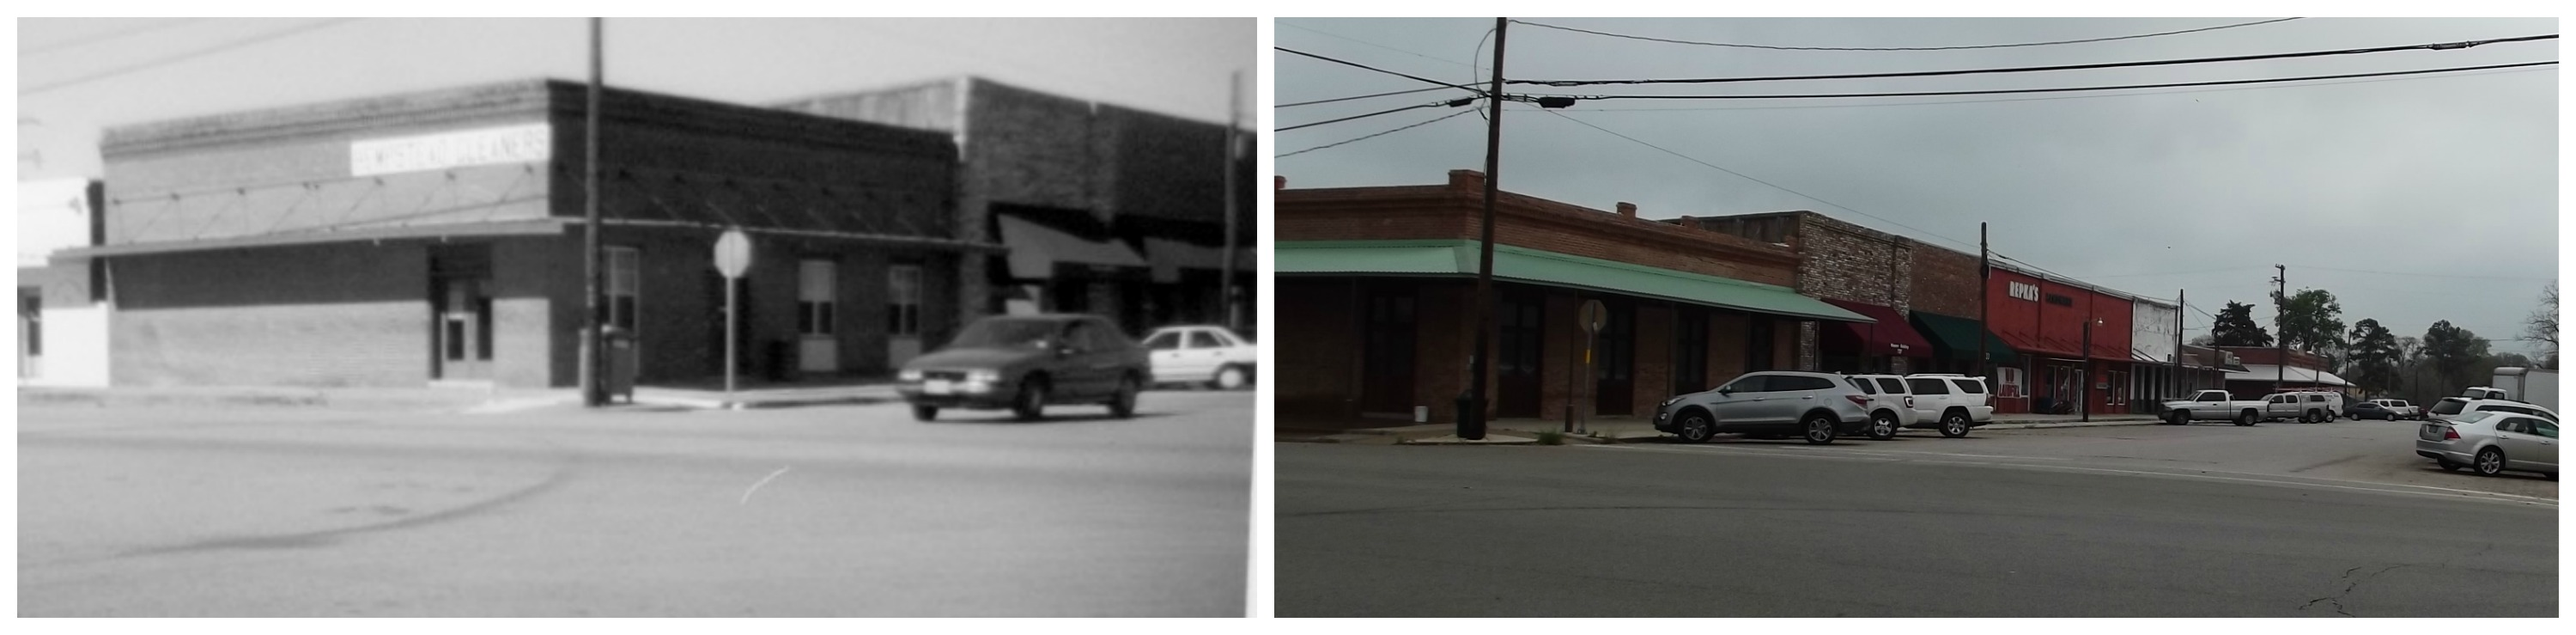 Hempstead 12th Street looking North 1995 & 2014